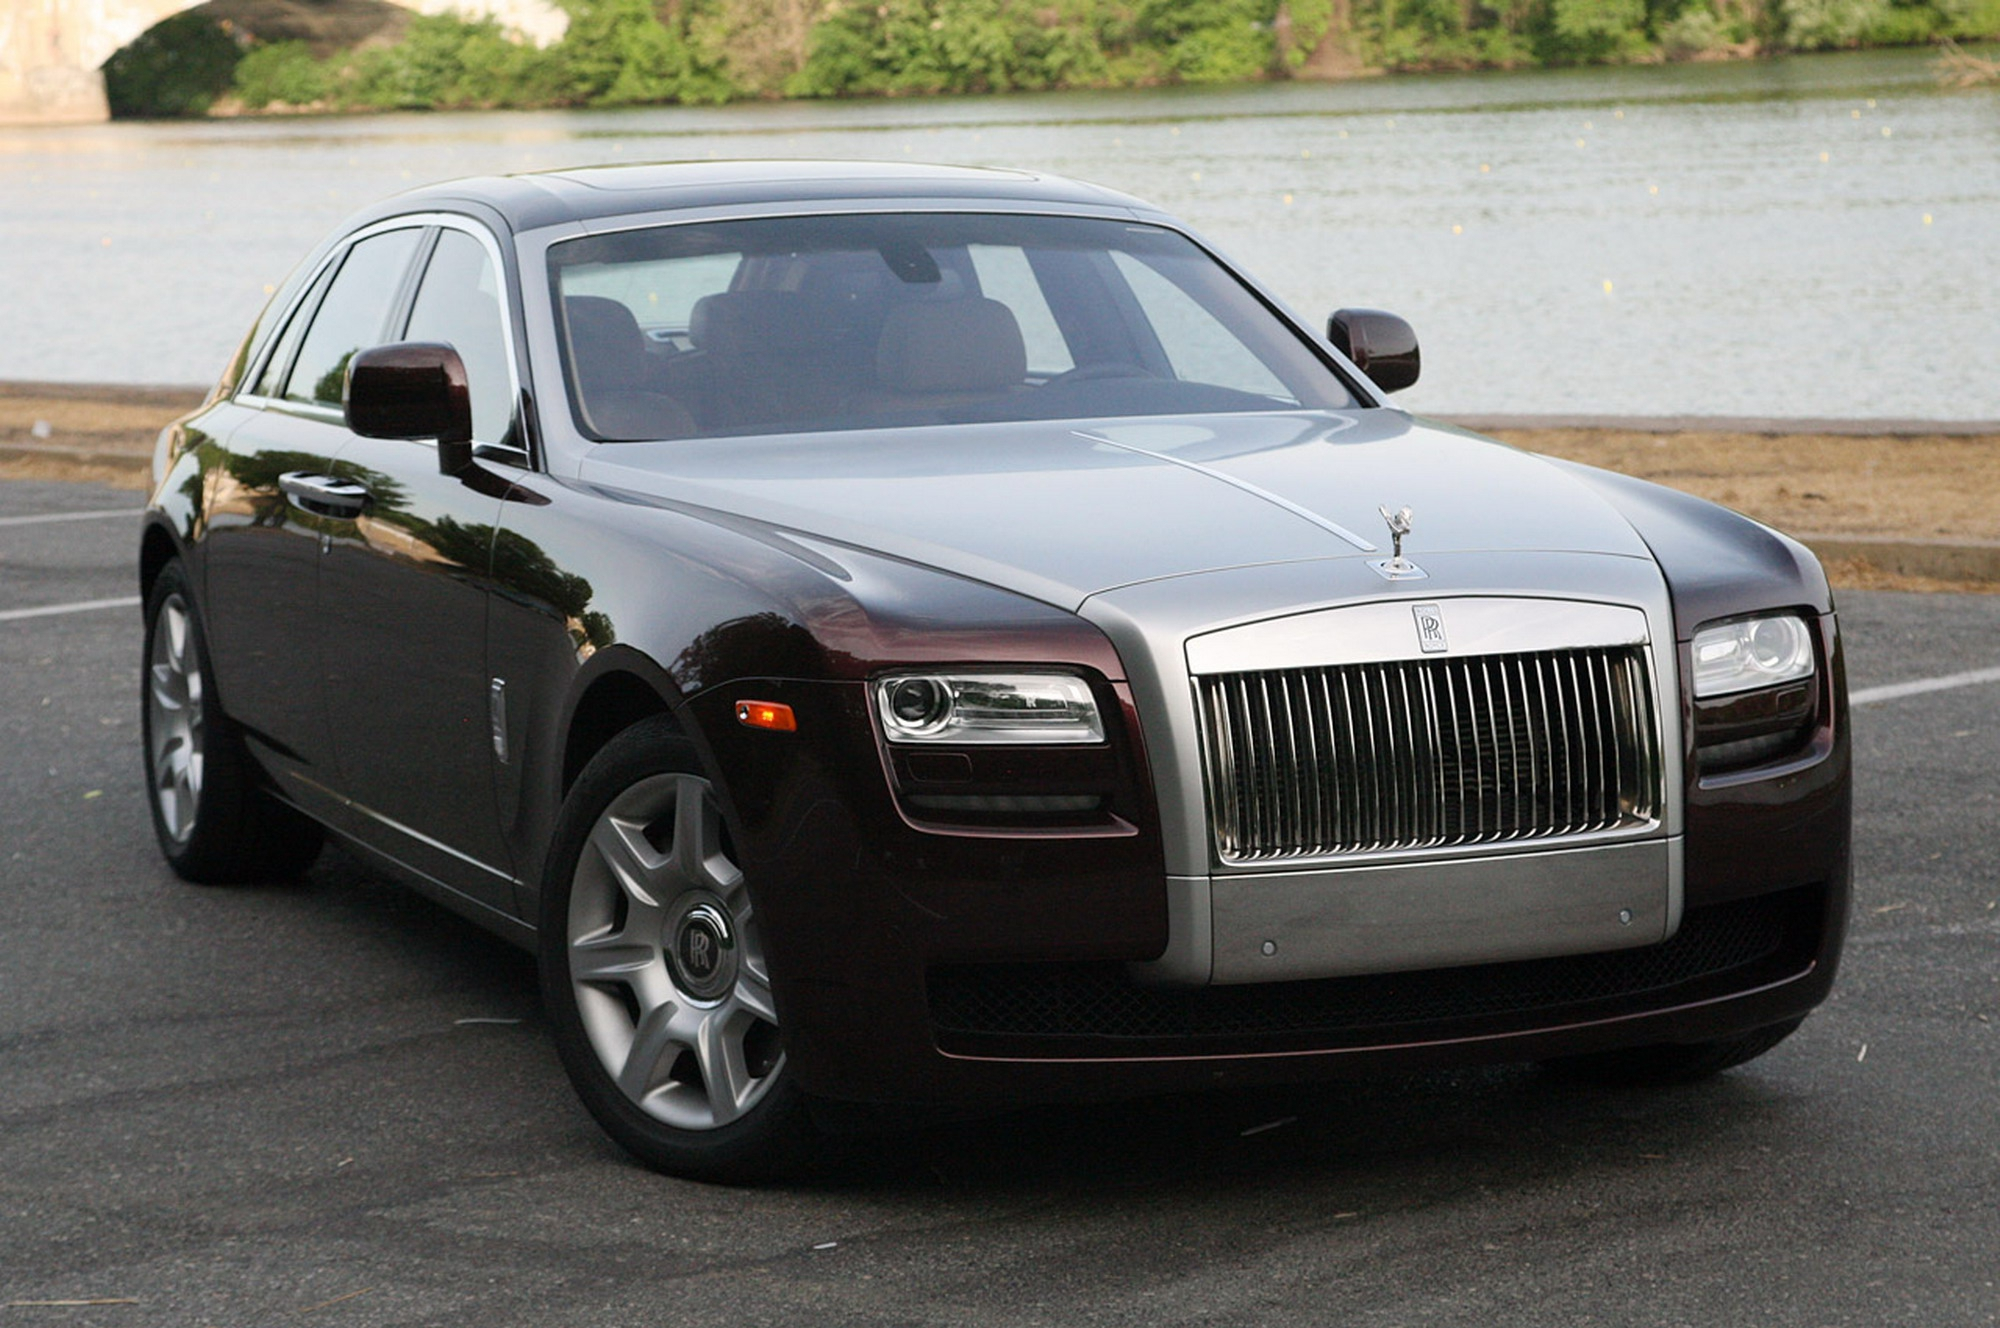 Rolls Royce Ghost Wallpapers Images Pictures Backgrounds